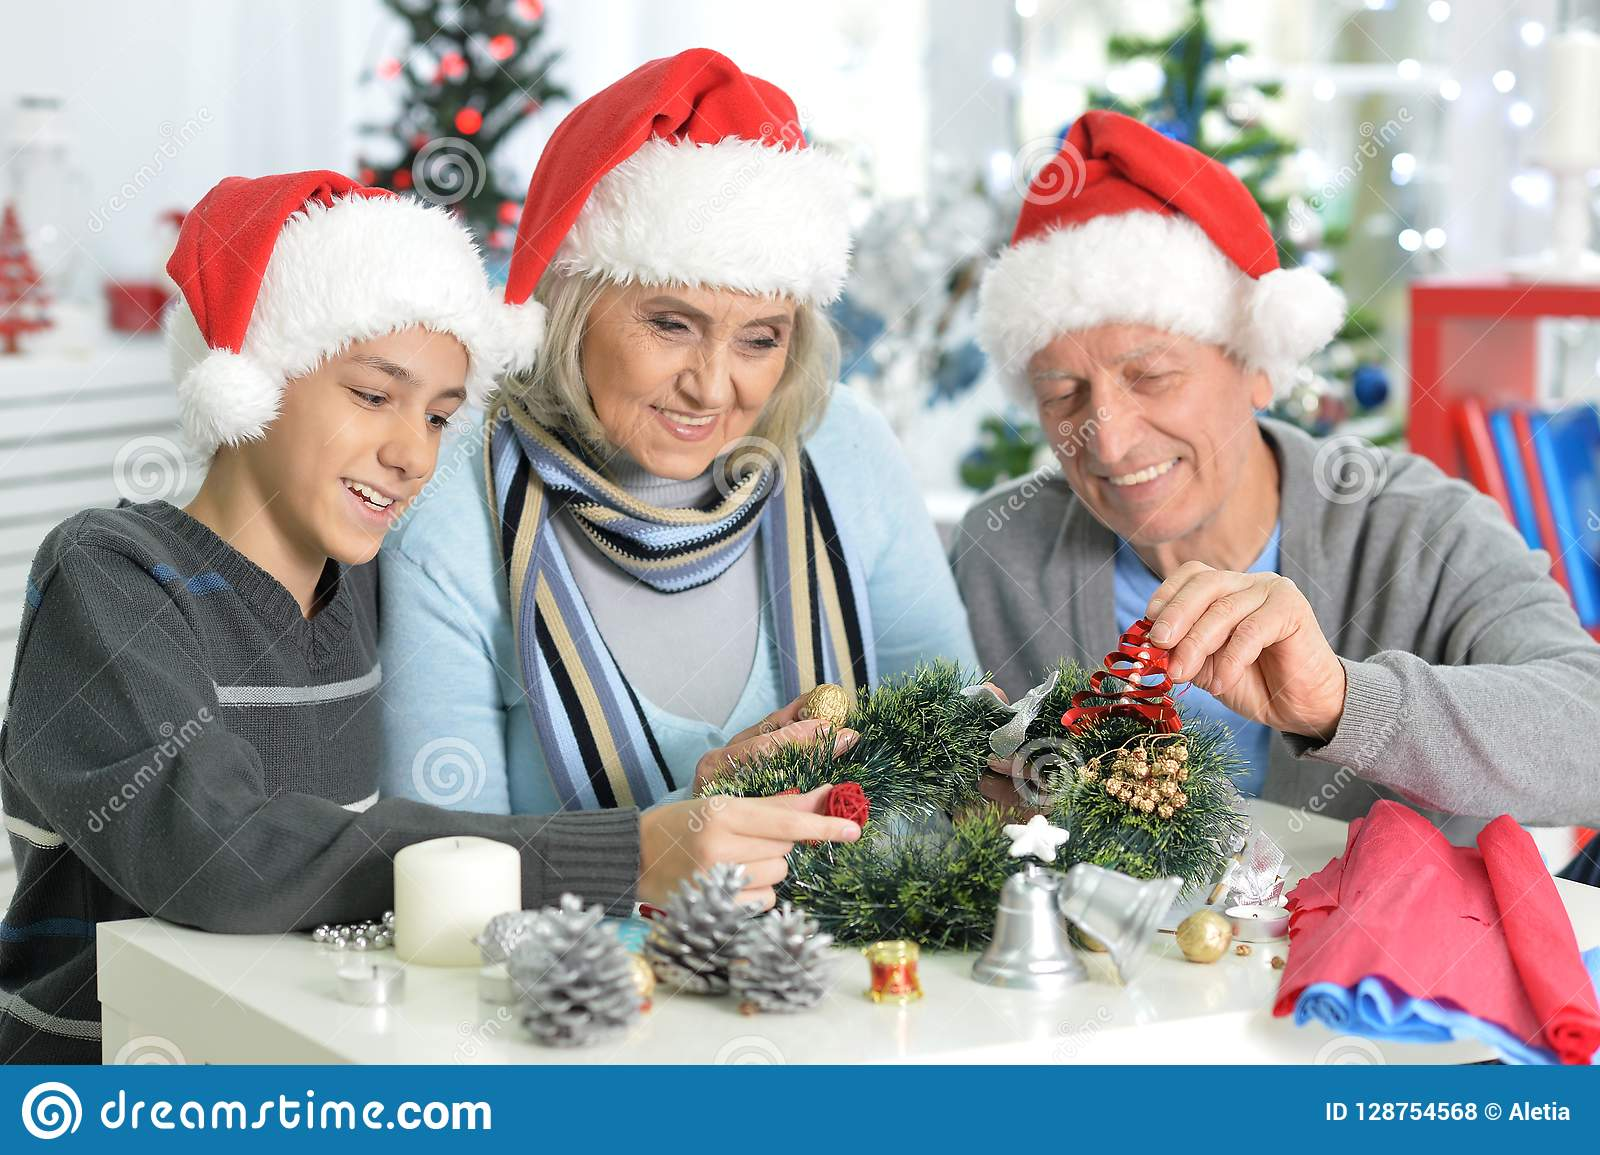 Portrait of grandparents with boy preparing for Christmas